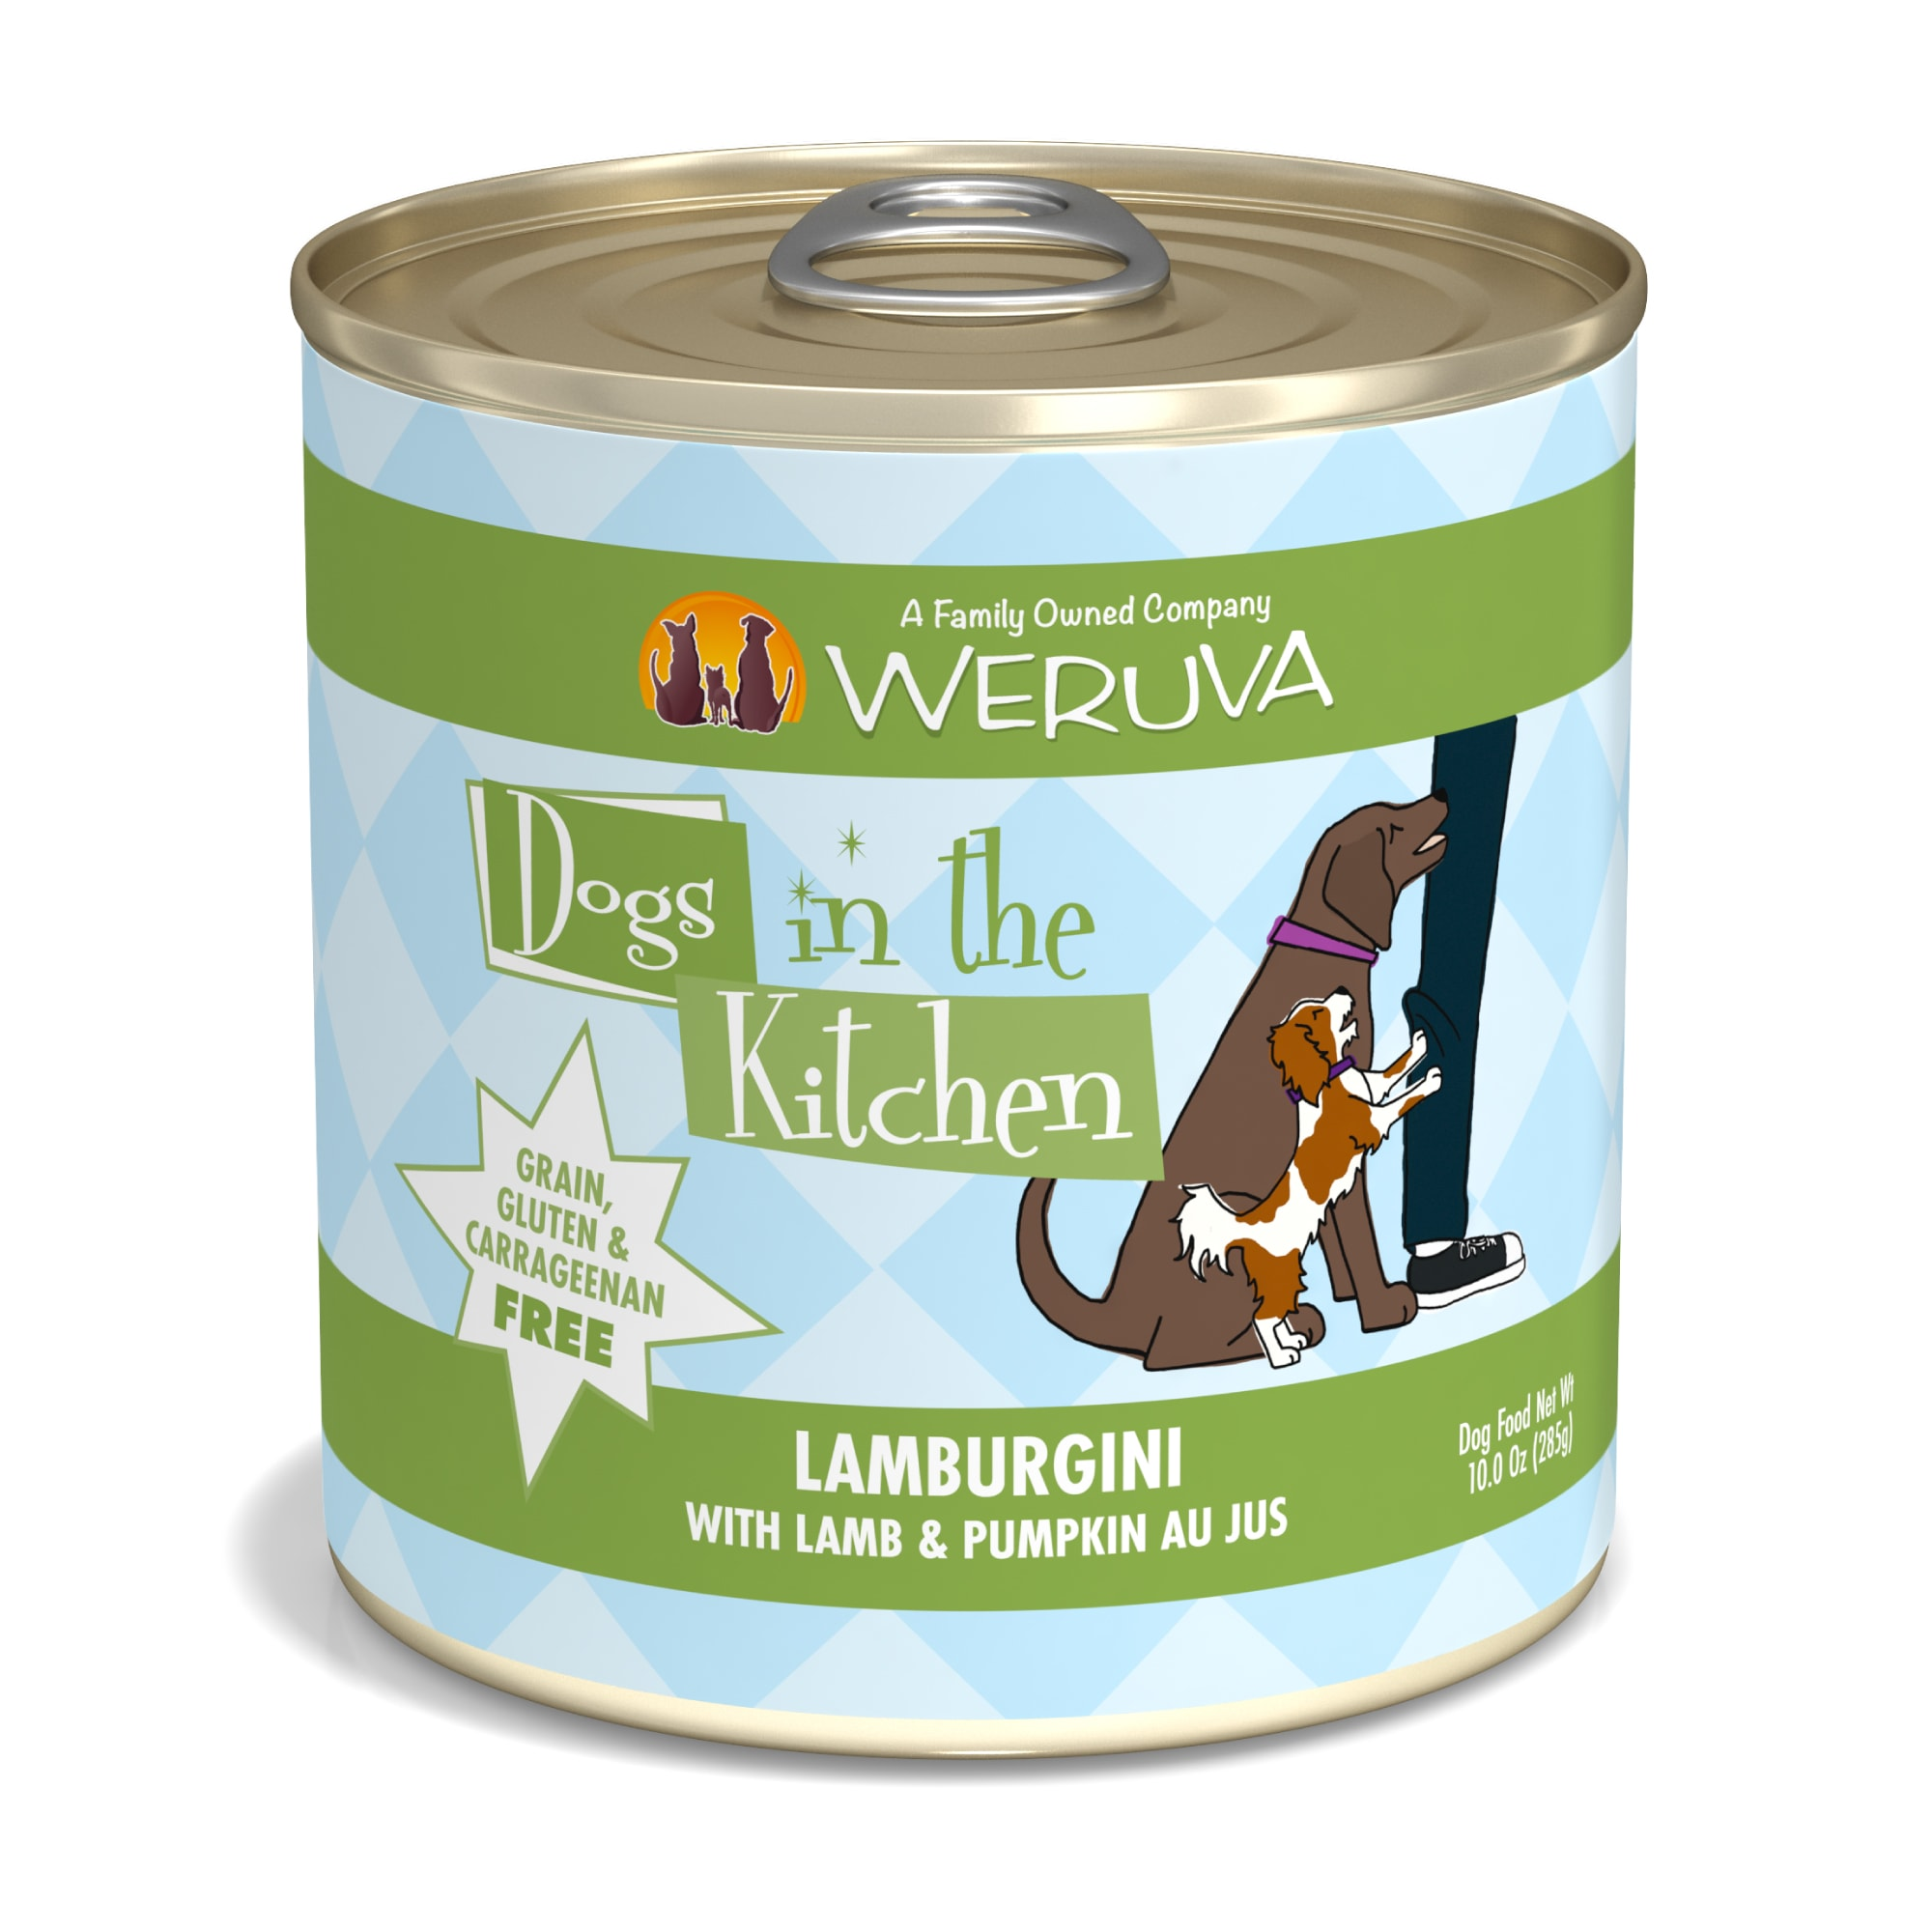 Weruva Dogs in the Kitchen Lamburgini with Lamb & Pumpkin Au Jus Grain-Free Wet Dog Food, 10-oz can